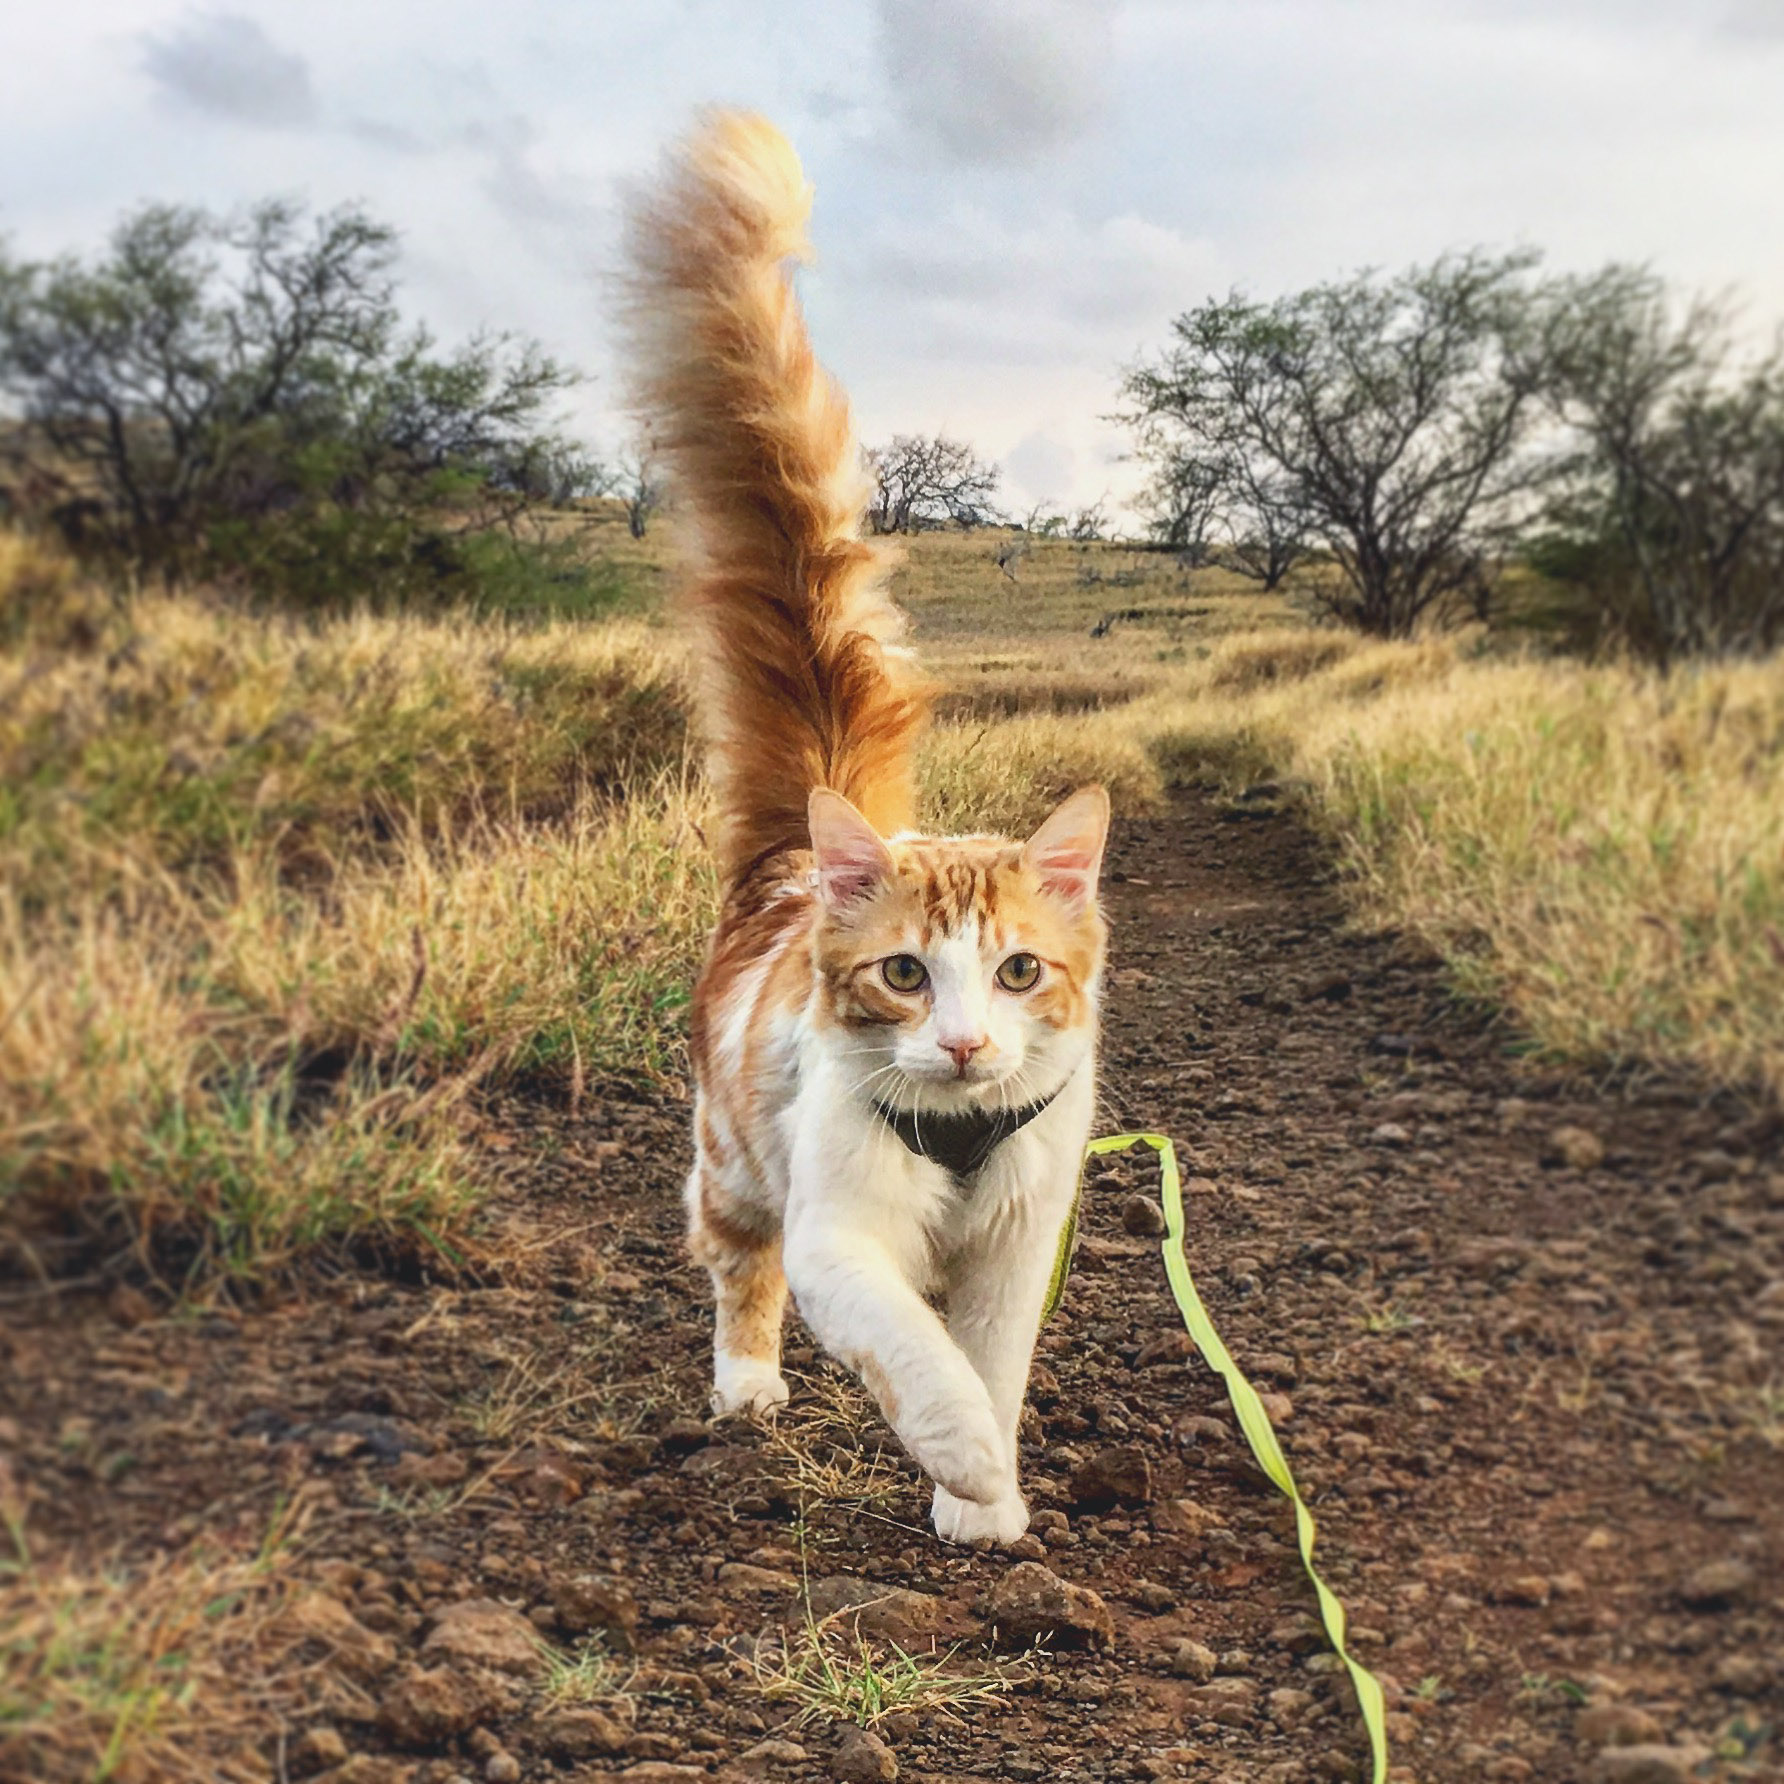 Atlas the cat running on leash